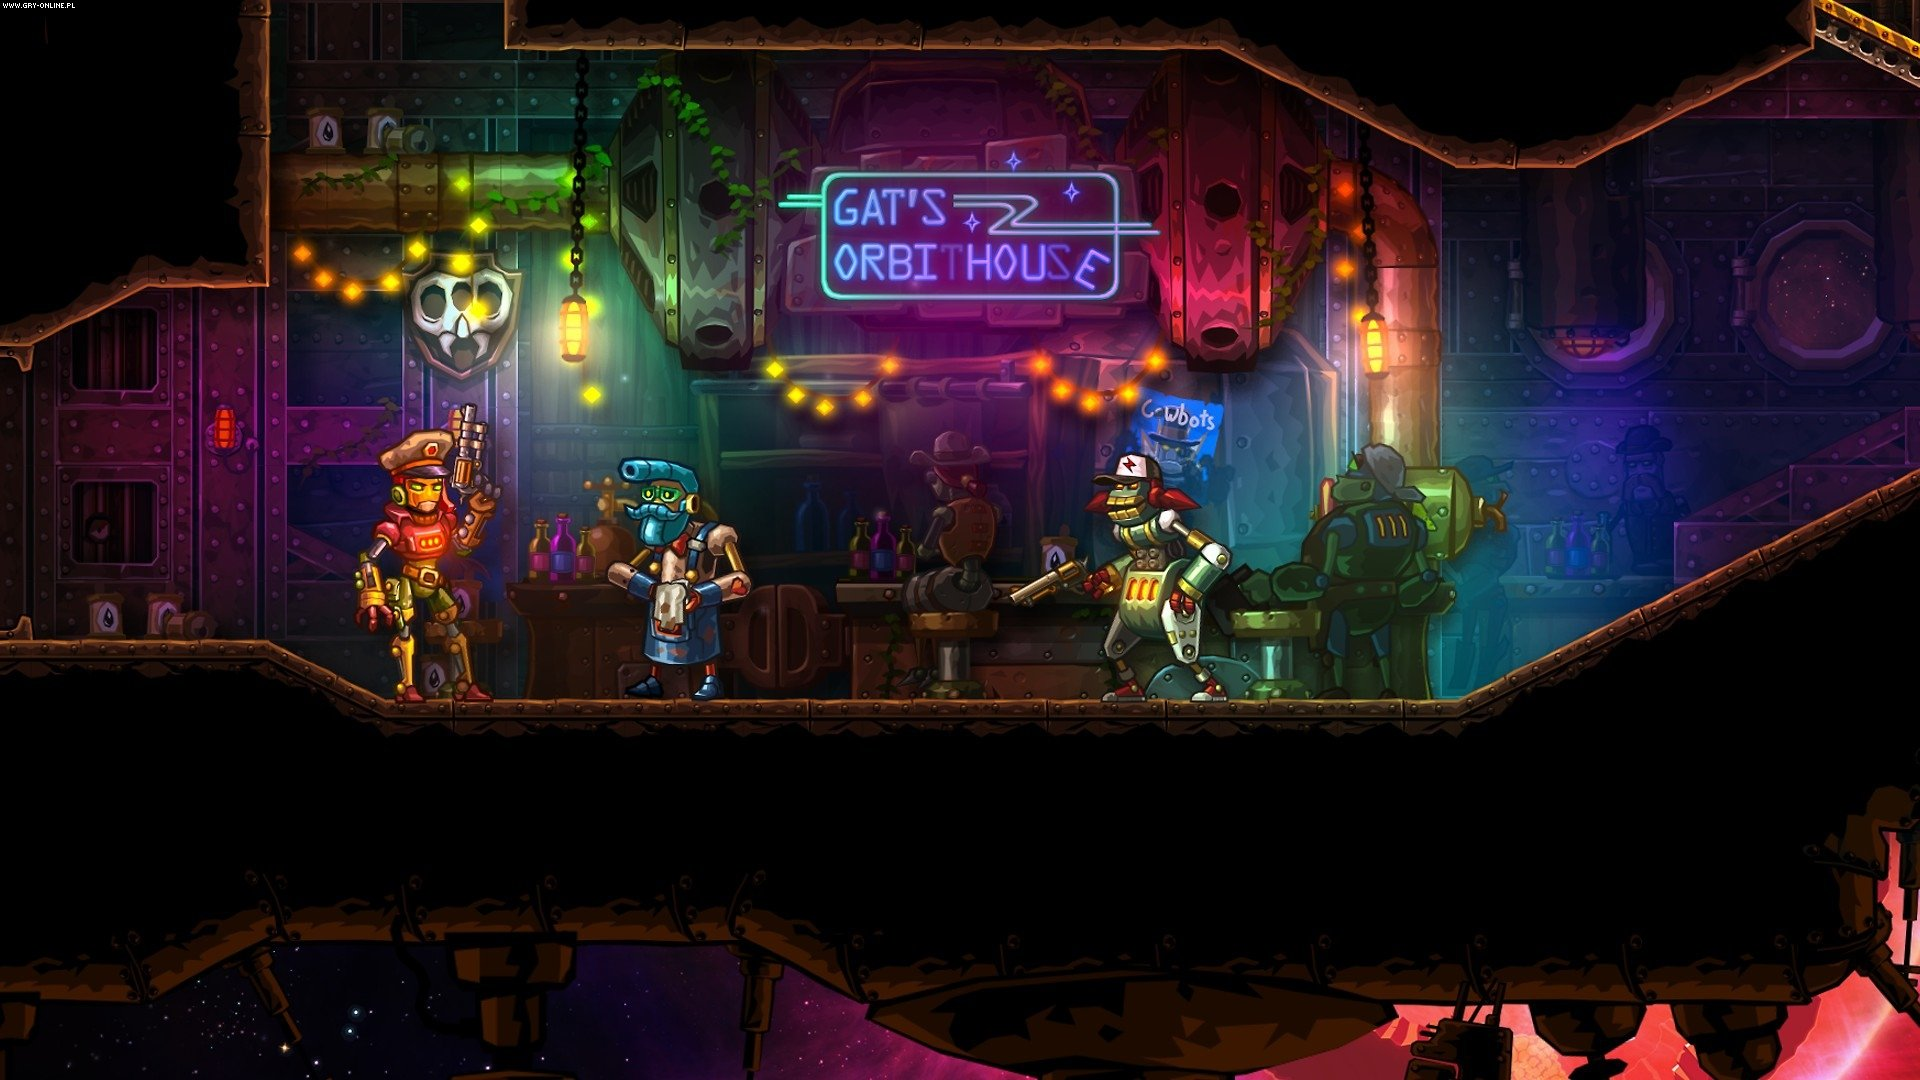 SteamWorld Heist PC, 3DS, PSV, WiiU, PS4, XONE, Switch Gry Screen 8/12, Image & Form